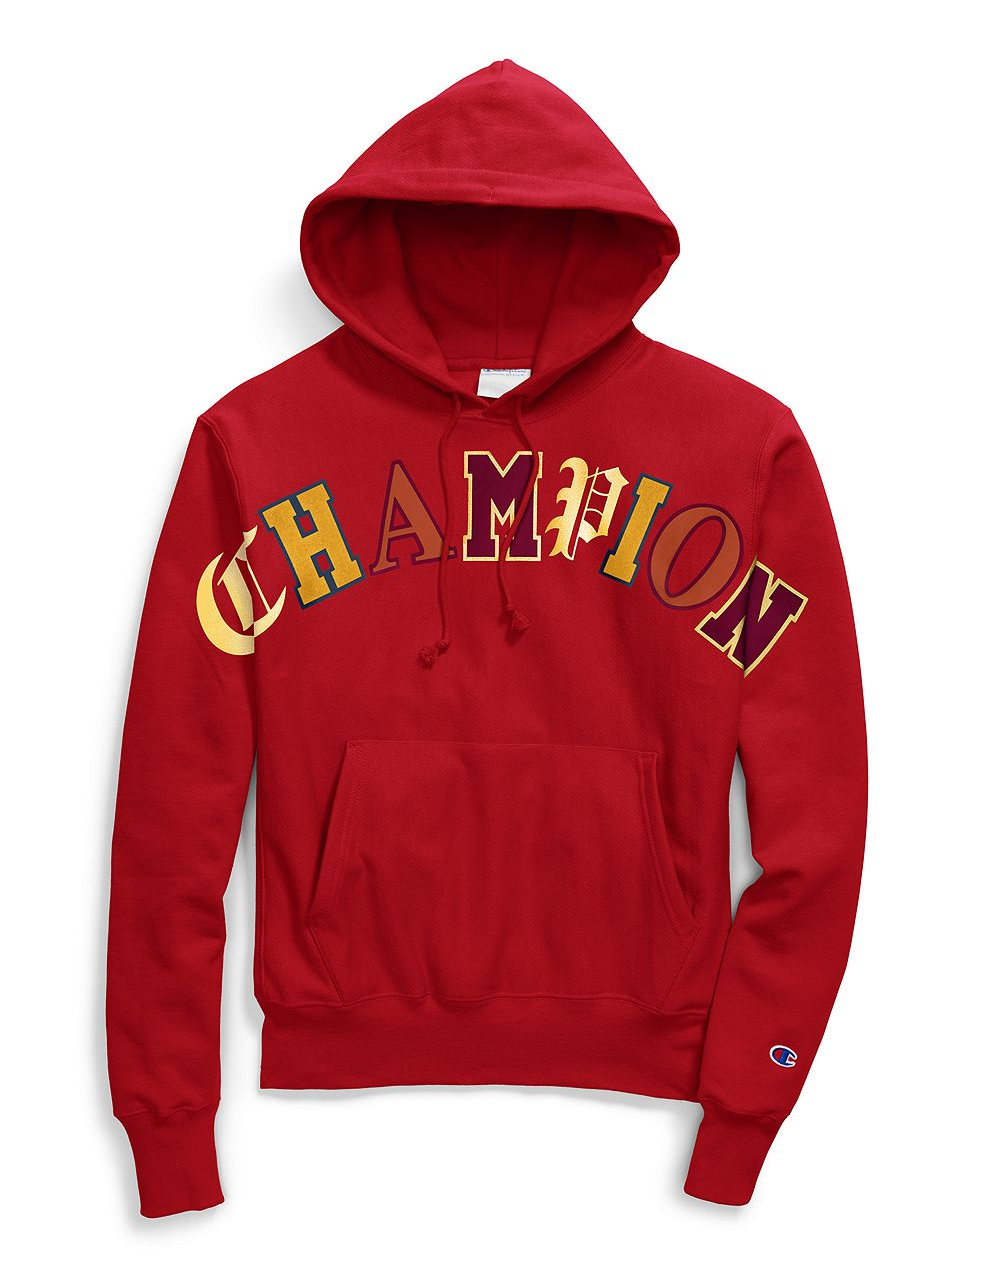 Champion Life® Men's Reverse Weave® Pullover Hoodie, Old English Lettering Red